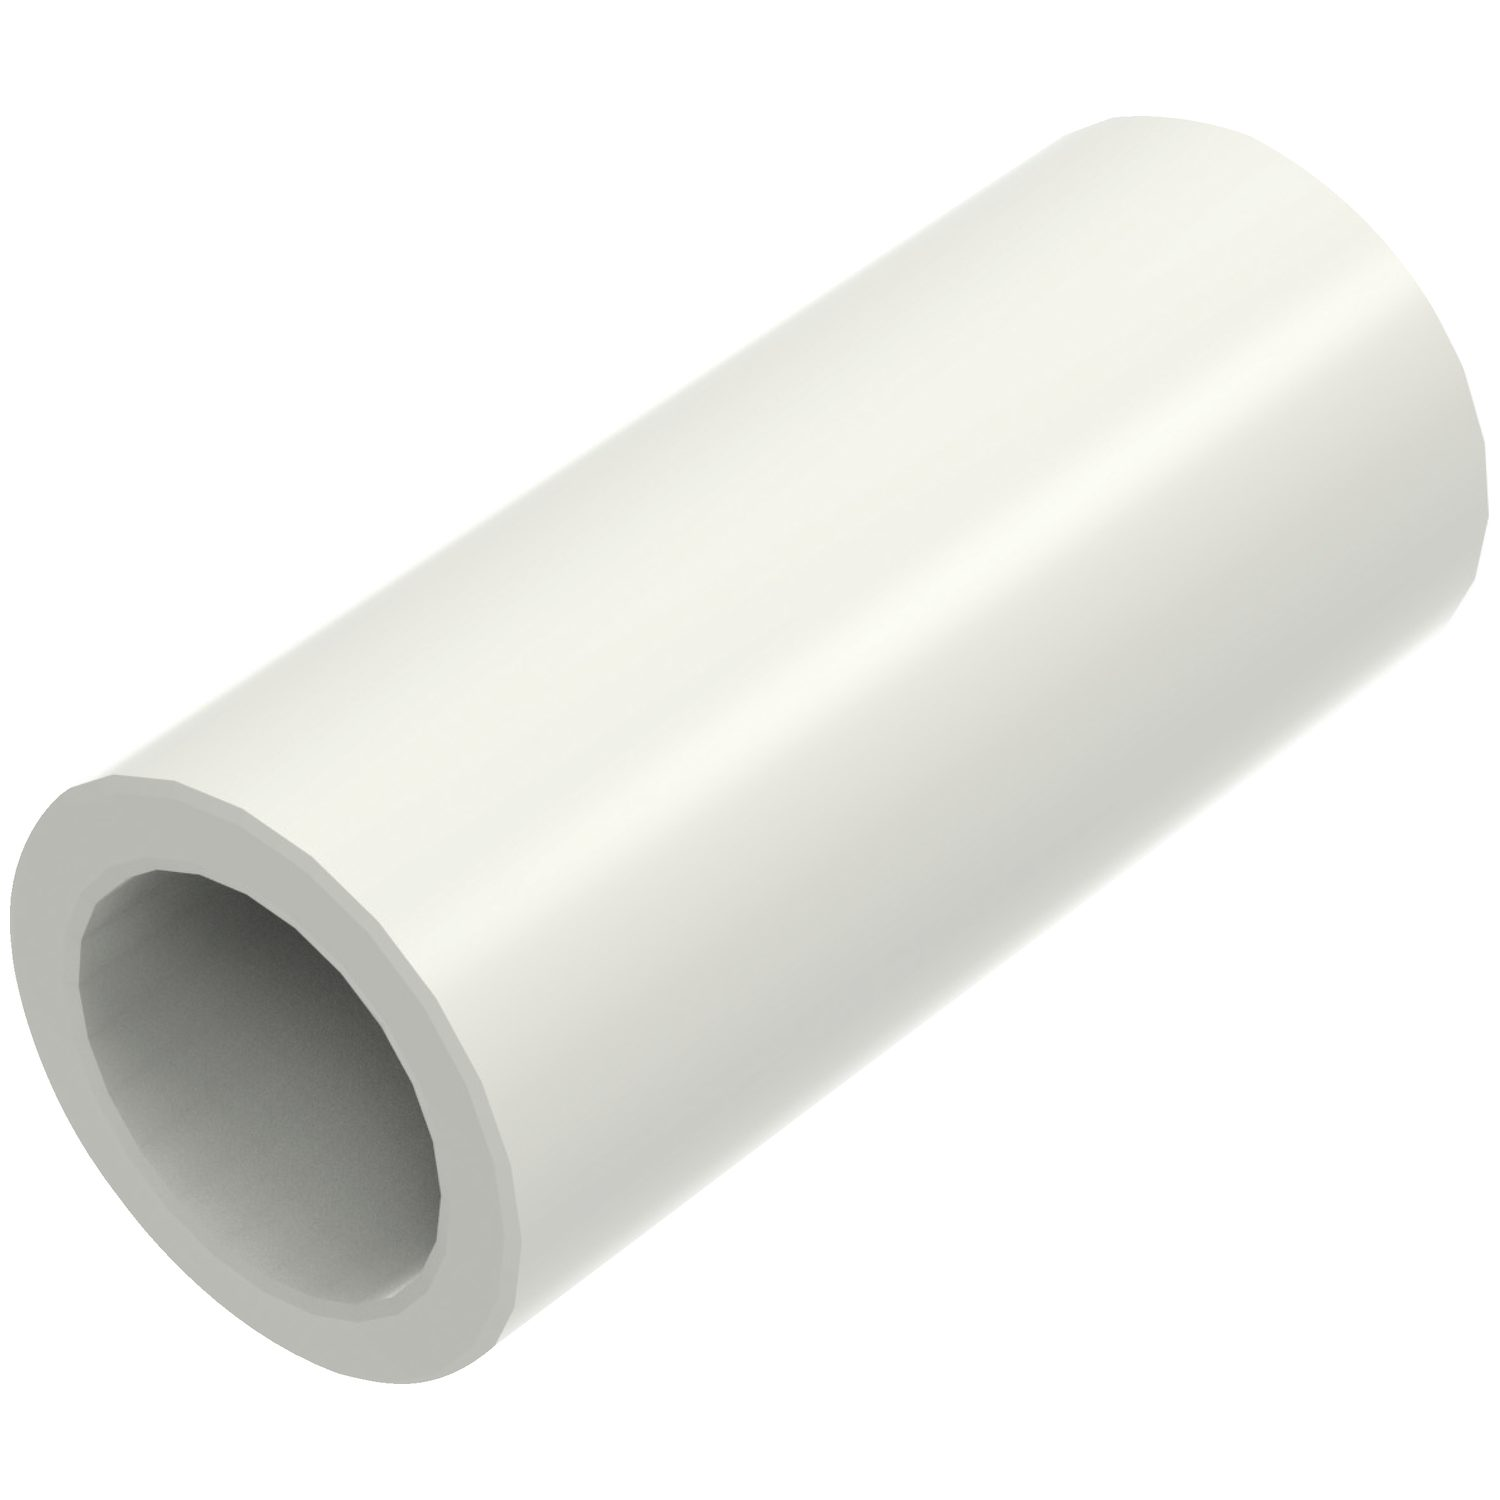 P1332 - Cylindrical Spacers - Nylon